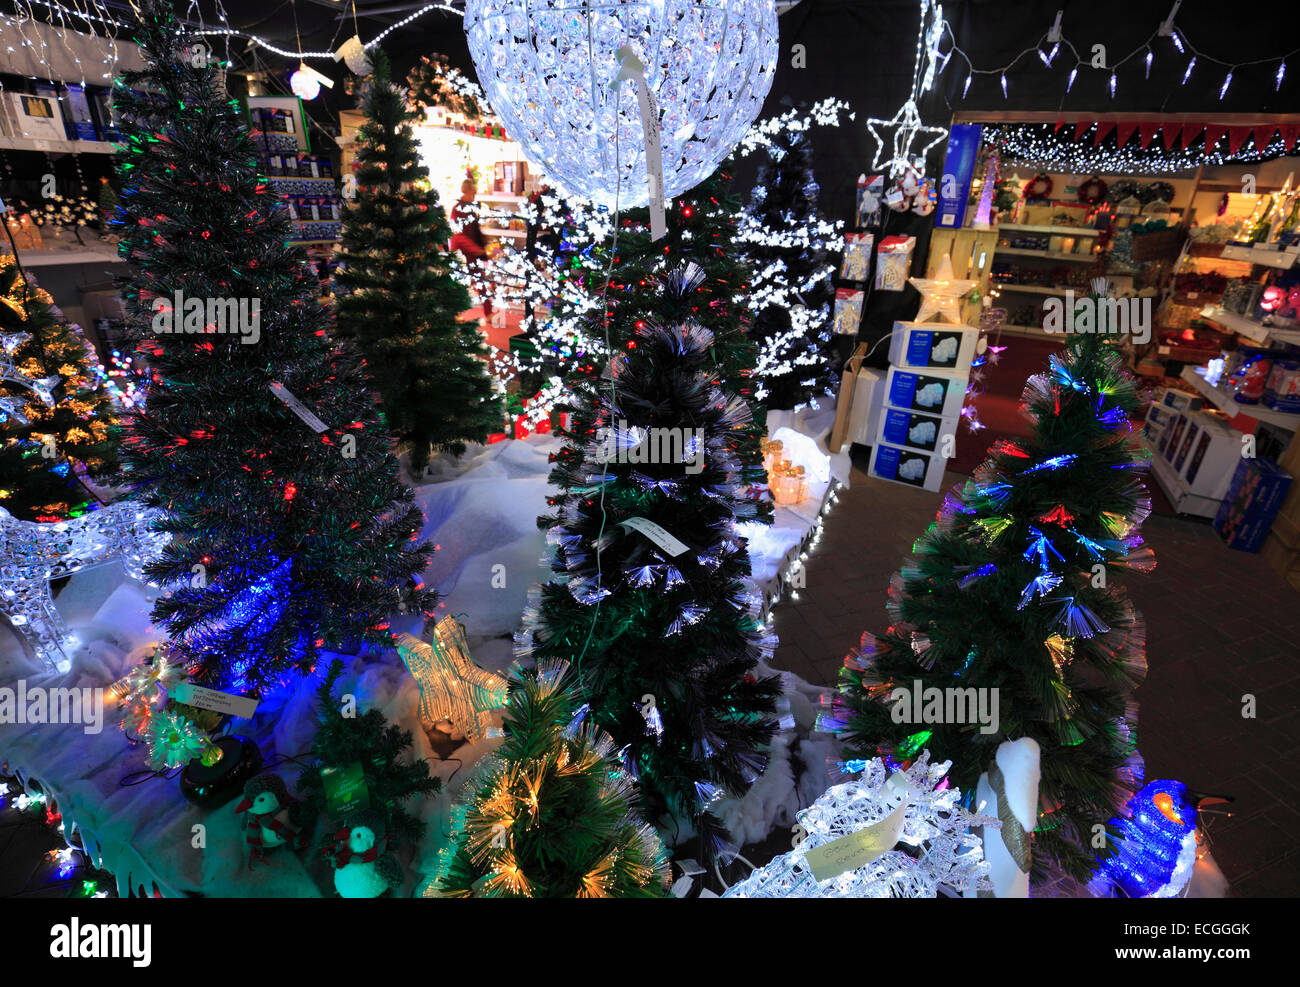 Artificial Christmas Trees And Decorations For Sale In A